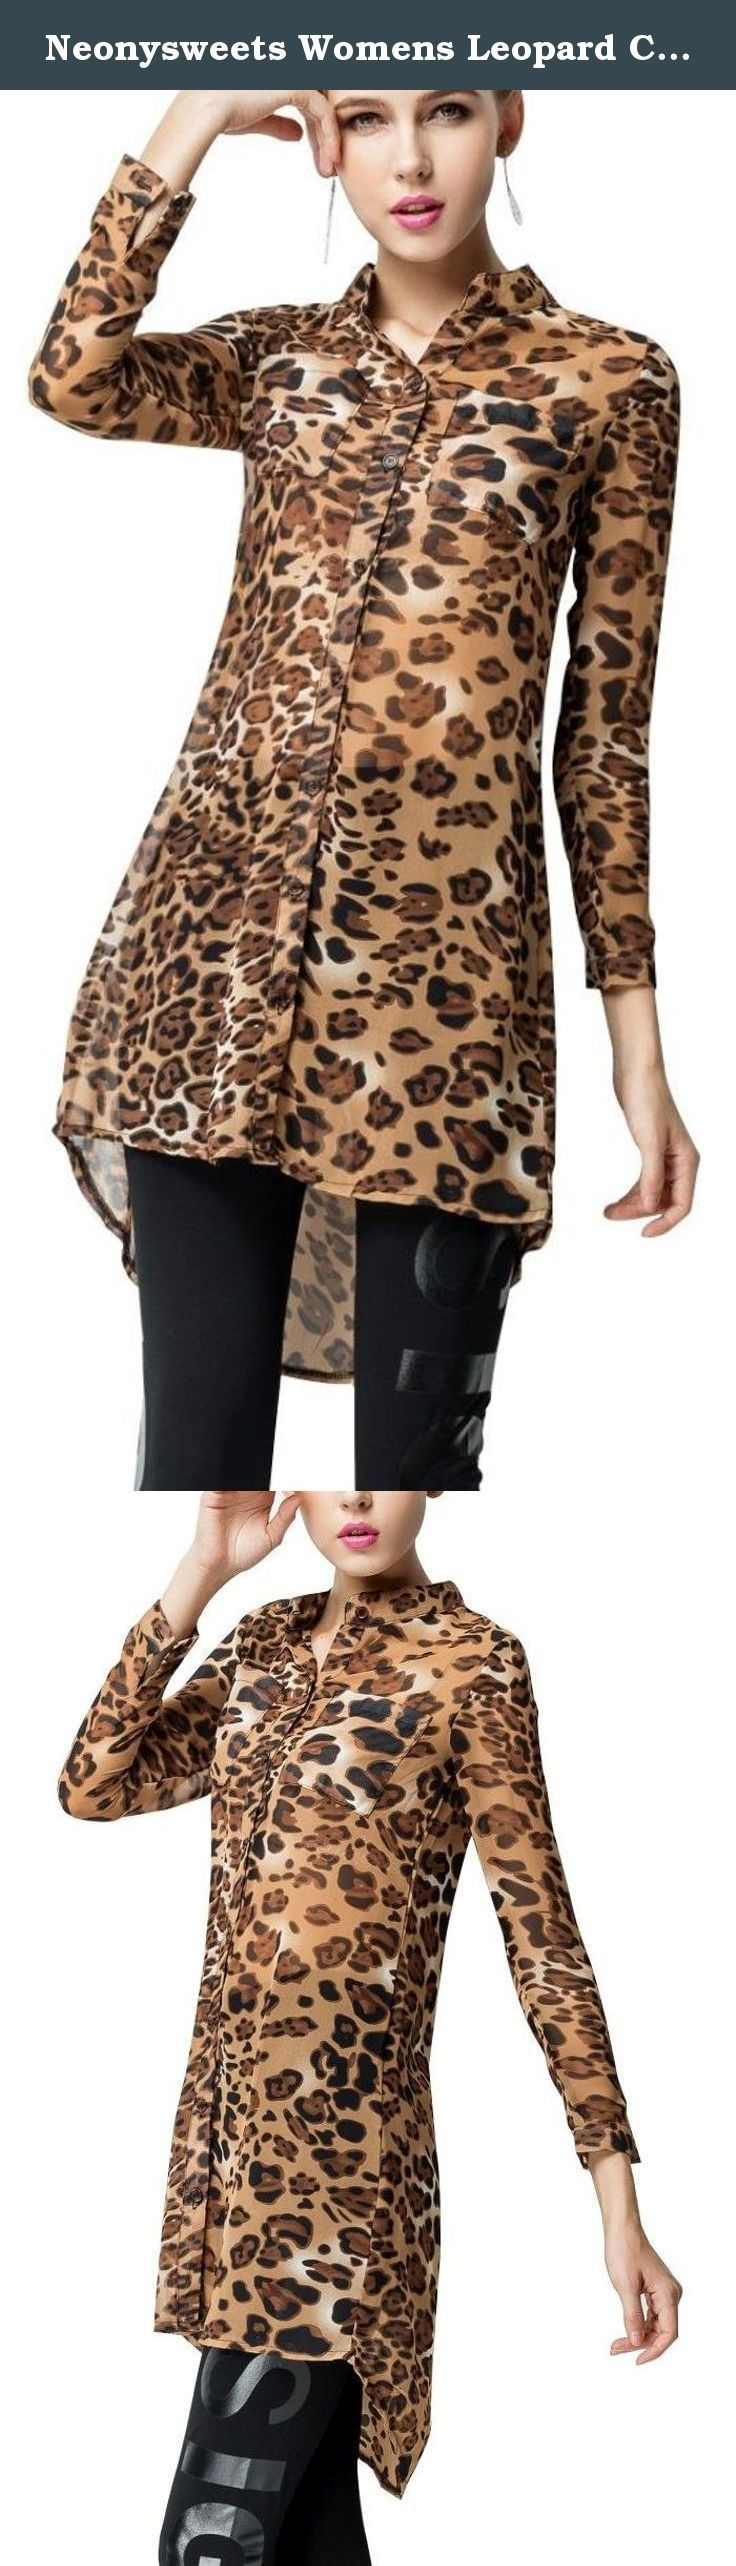 Neonysweets Womens Leopard Chiffon Shirts Long Sleeve Blouses Tops Casual XL. Welcome to Neonysweets. We had all kinds of fashion clothings. And we promise all of them are in the good quality. If you aren't satisfied with it, we will give you a full 100% money back guarantee.